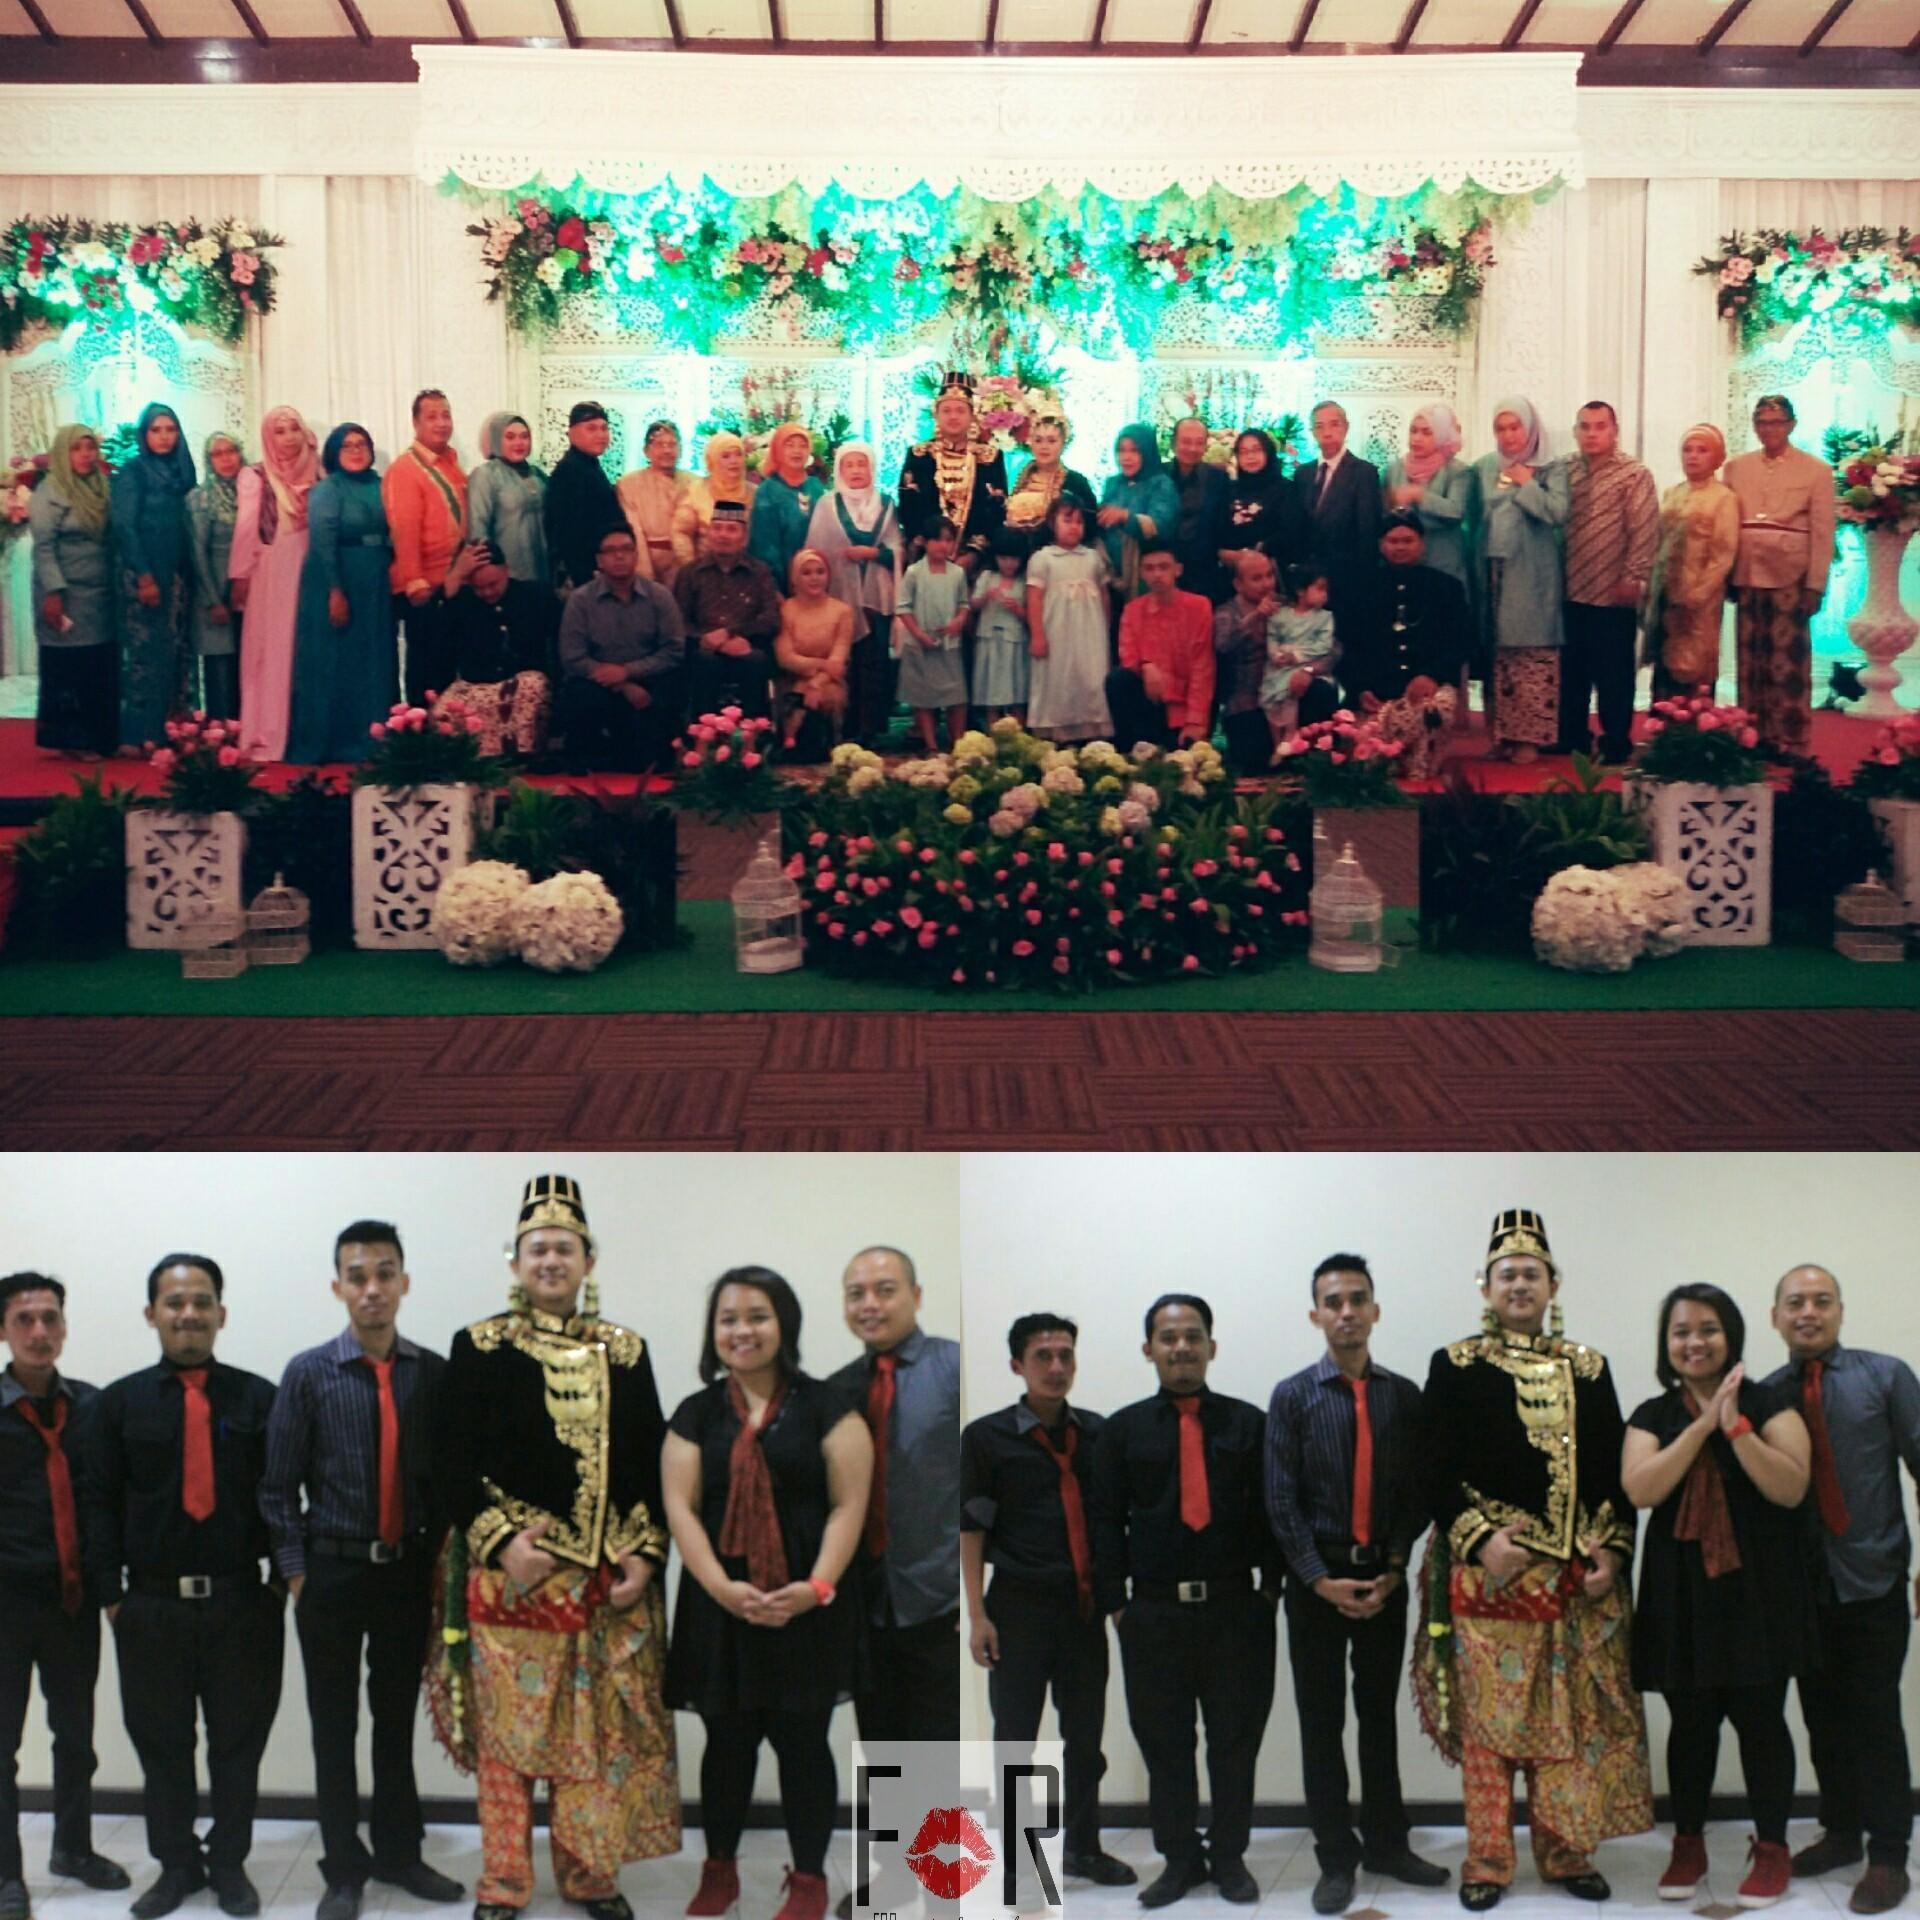 FOR ORGANIZER & PARTY PLANNER